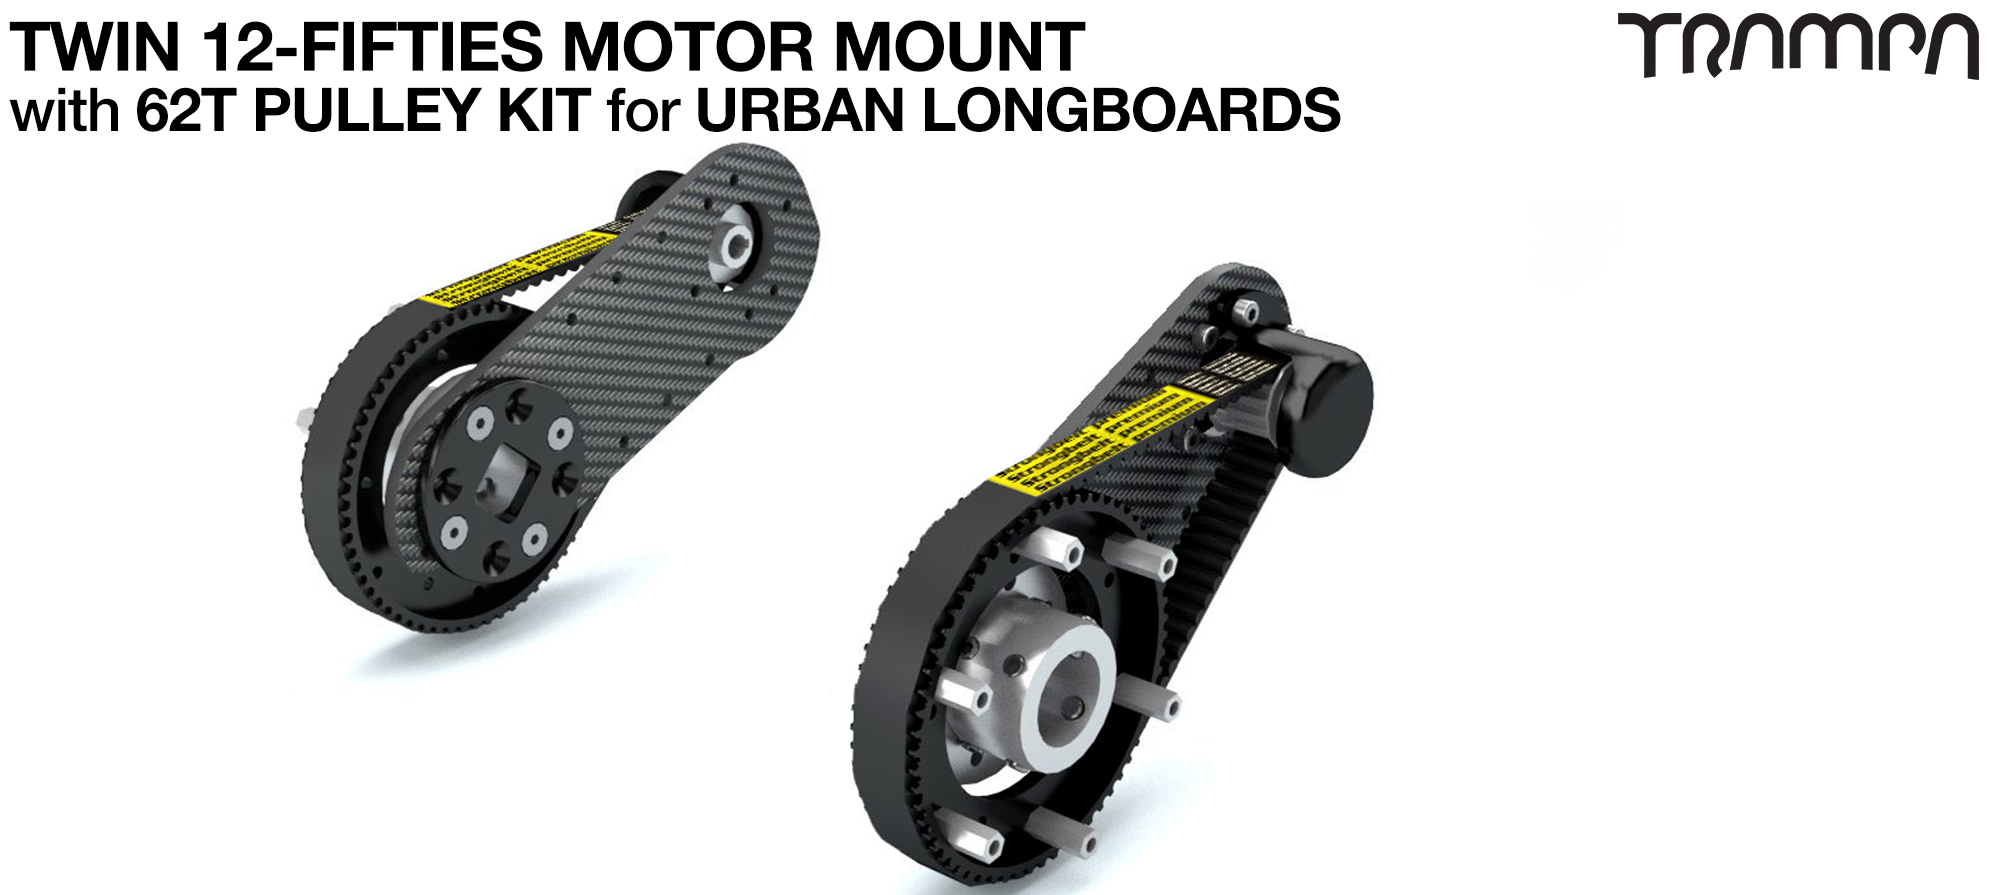 12Fifties CARBON Fibre Motormount Panel with Motor Axle support & Pulley Kit for URBAN Wheels TWIN